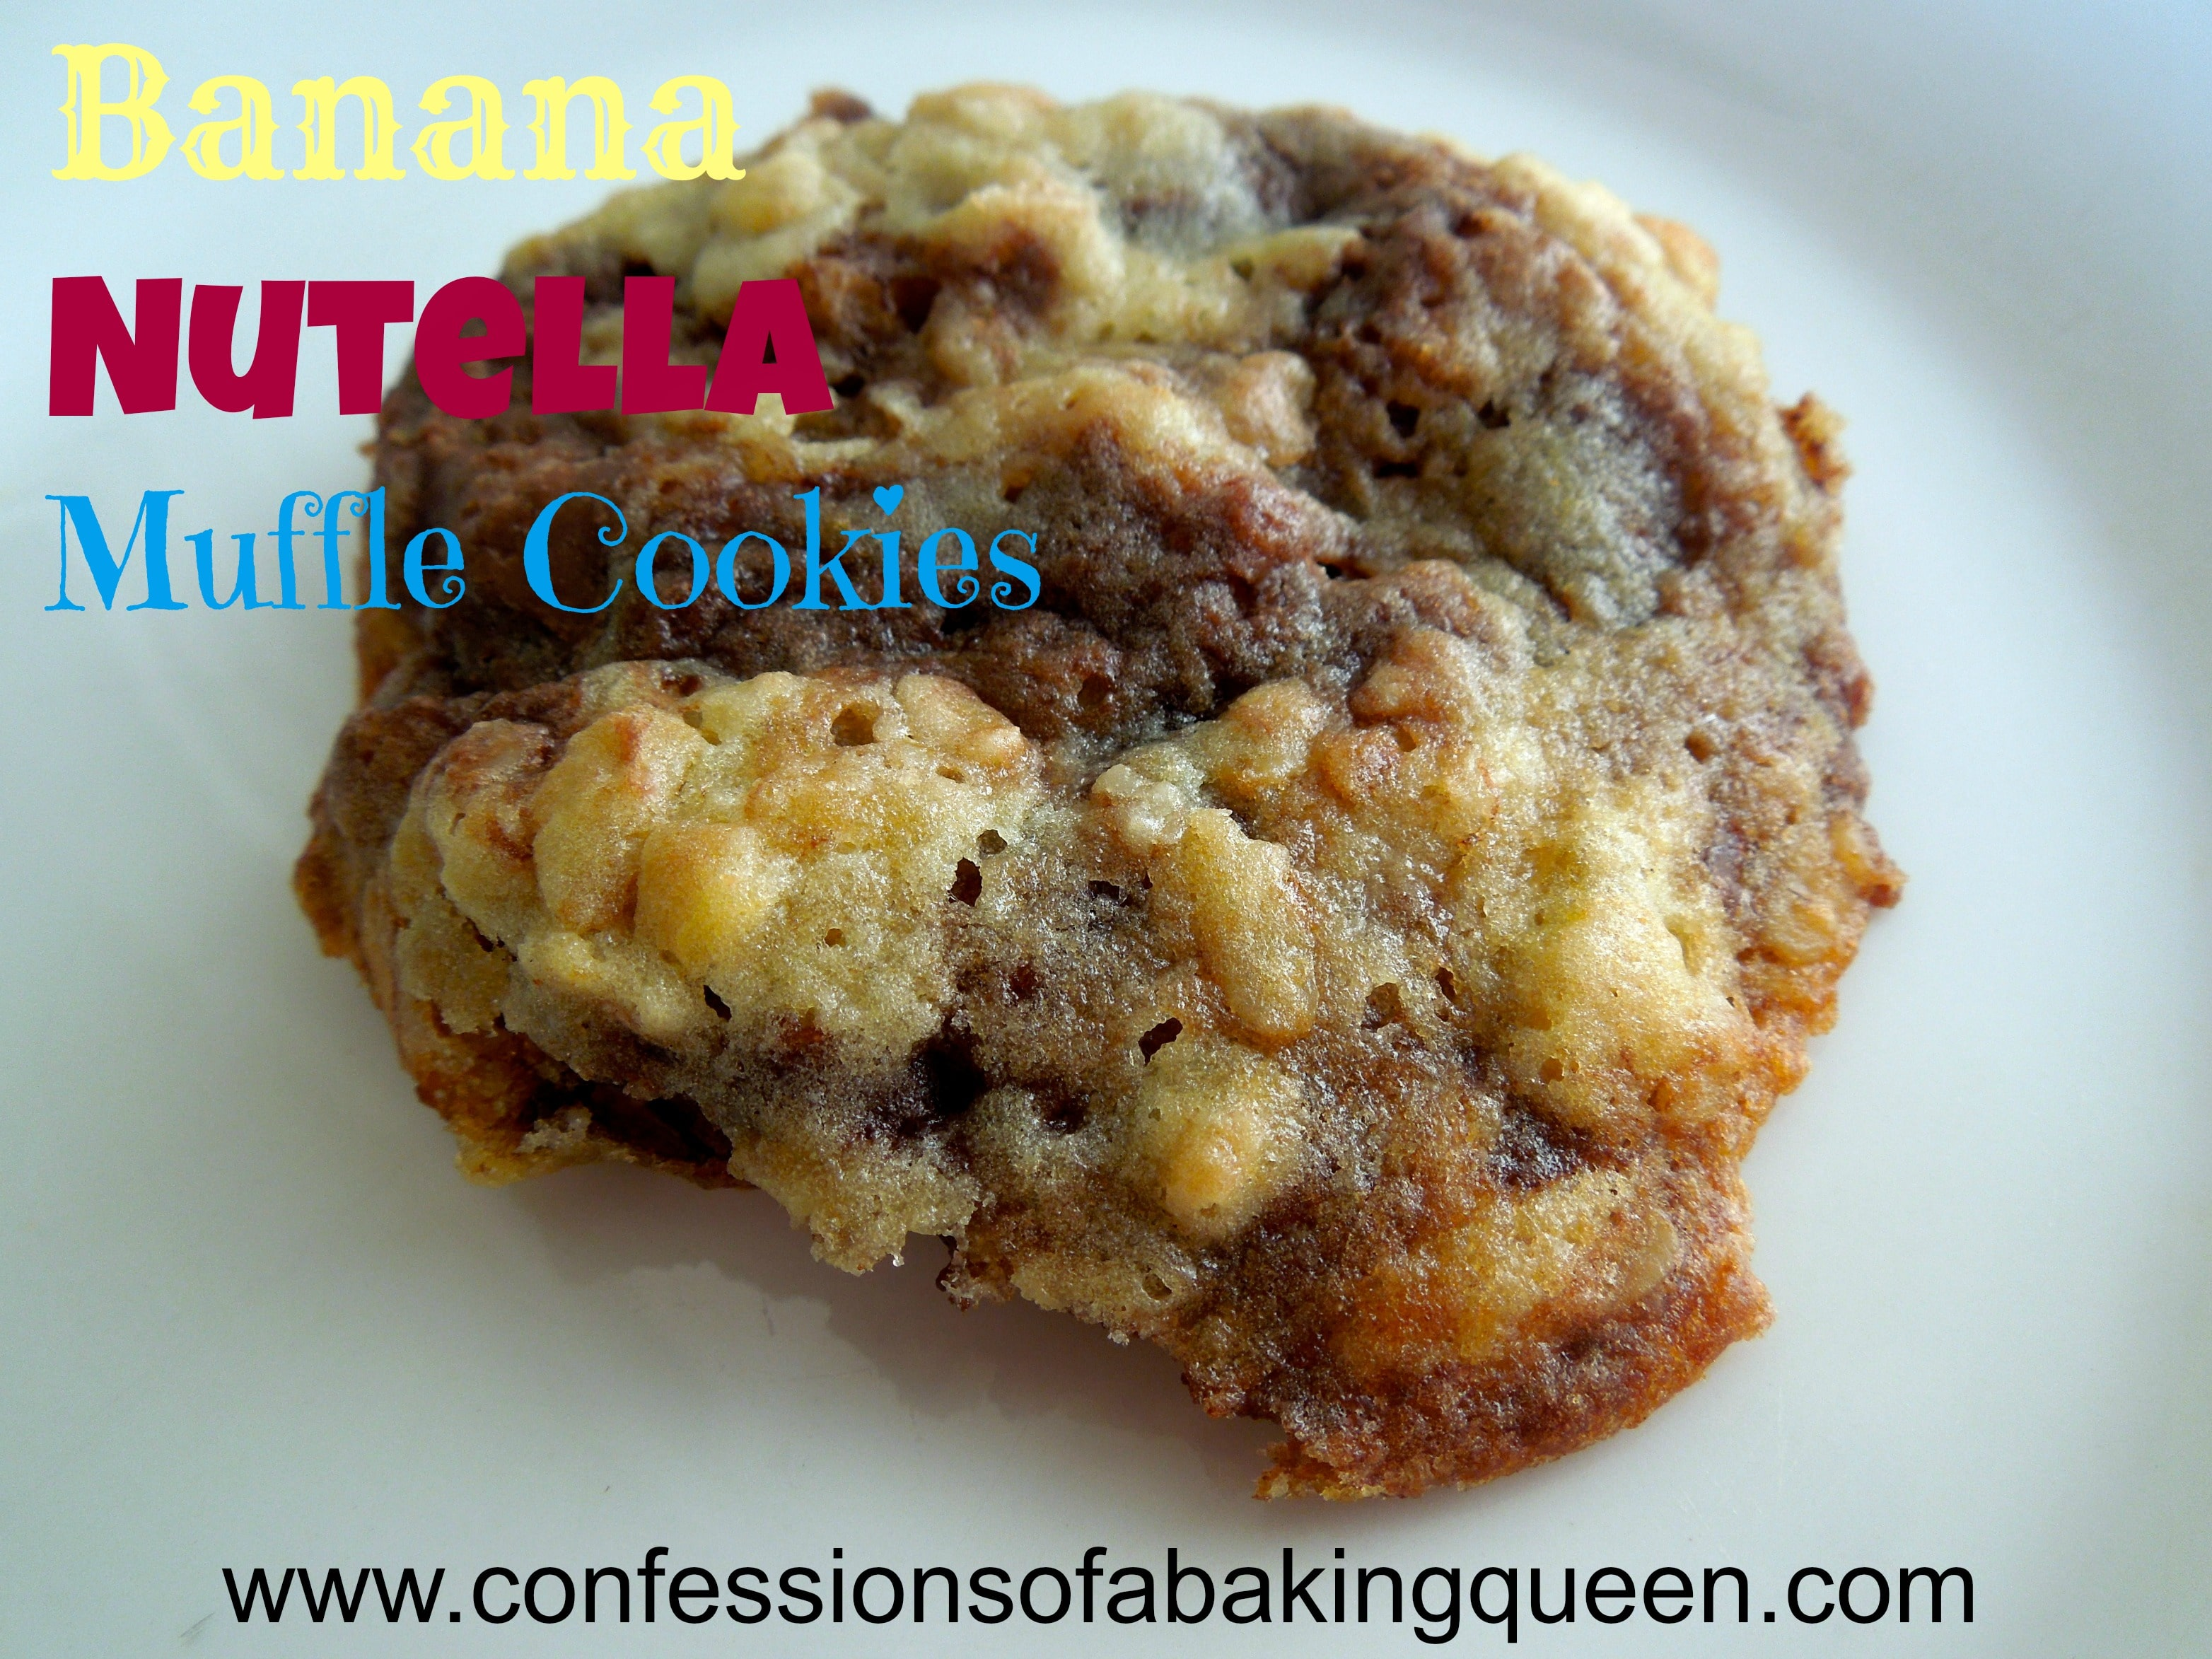 Banana Nutella Muffle Cookies www.confessionsofabakingqueen.com